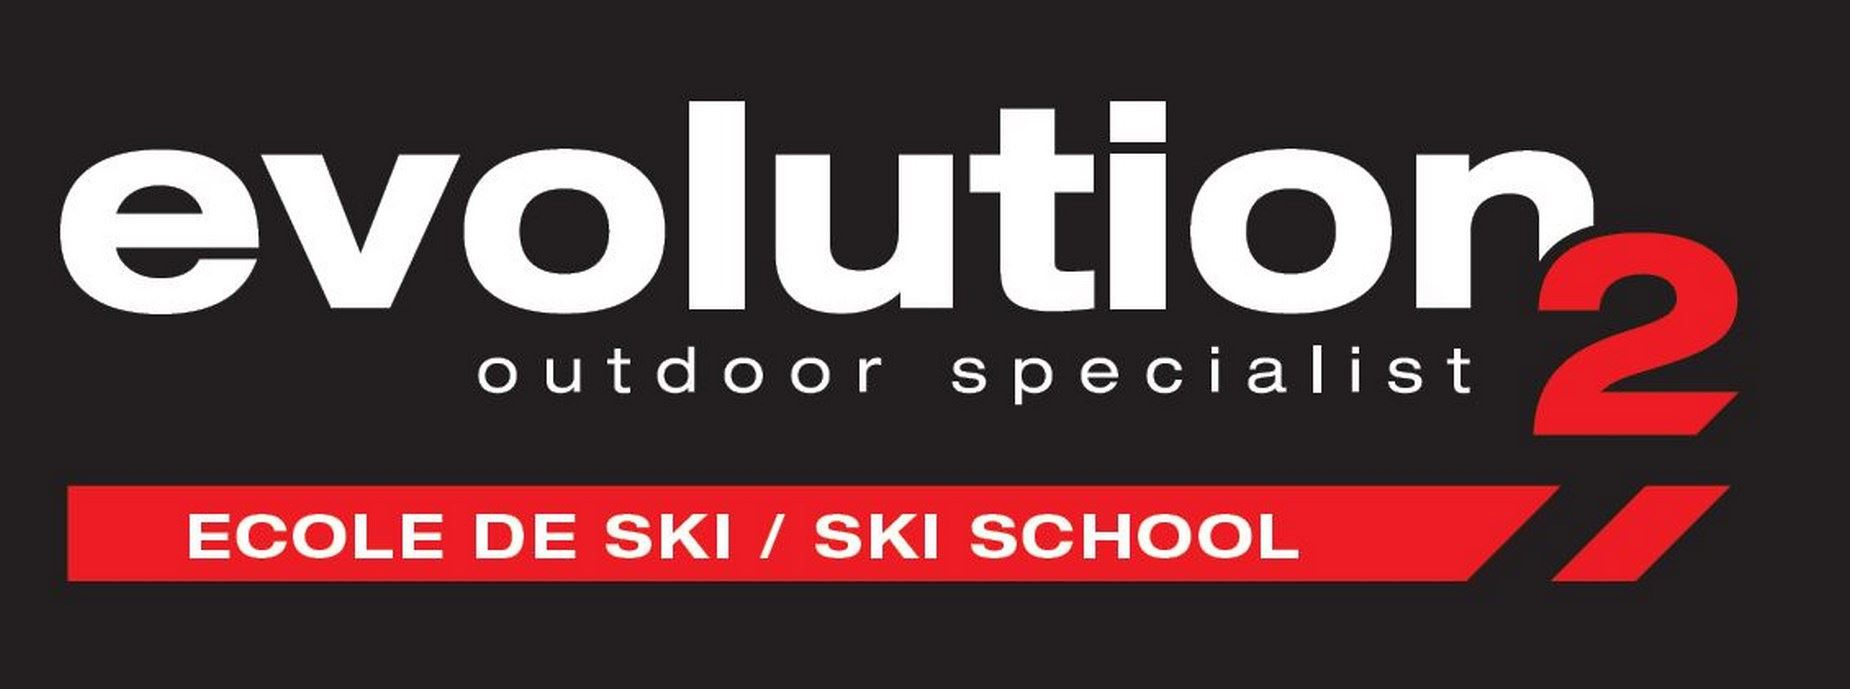 SKI LESSONS - EVOLUTION 2